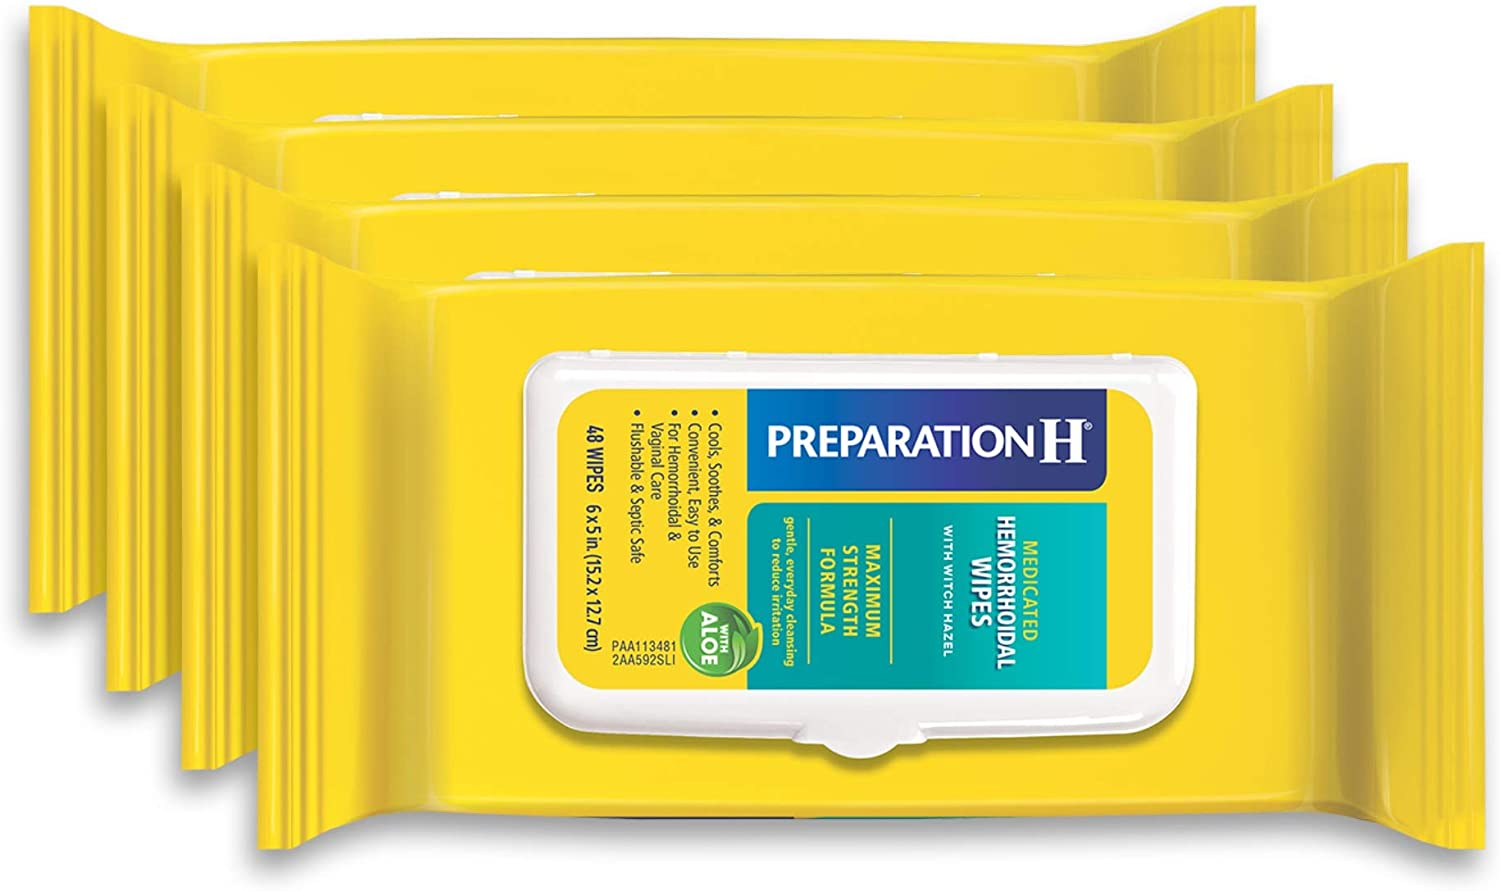 Preparation H Medicated Hemorrhoidal Wipes for Cleansing, Burning, Itch and Irritation Relief, 4 packs of 48 count, 192 count, Multi (305730556989): Health & Personal Care